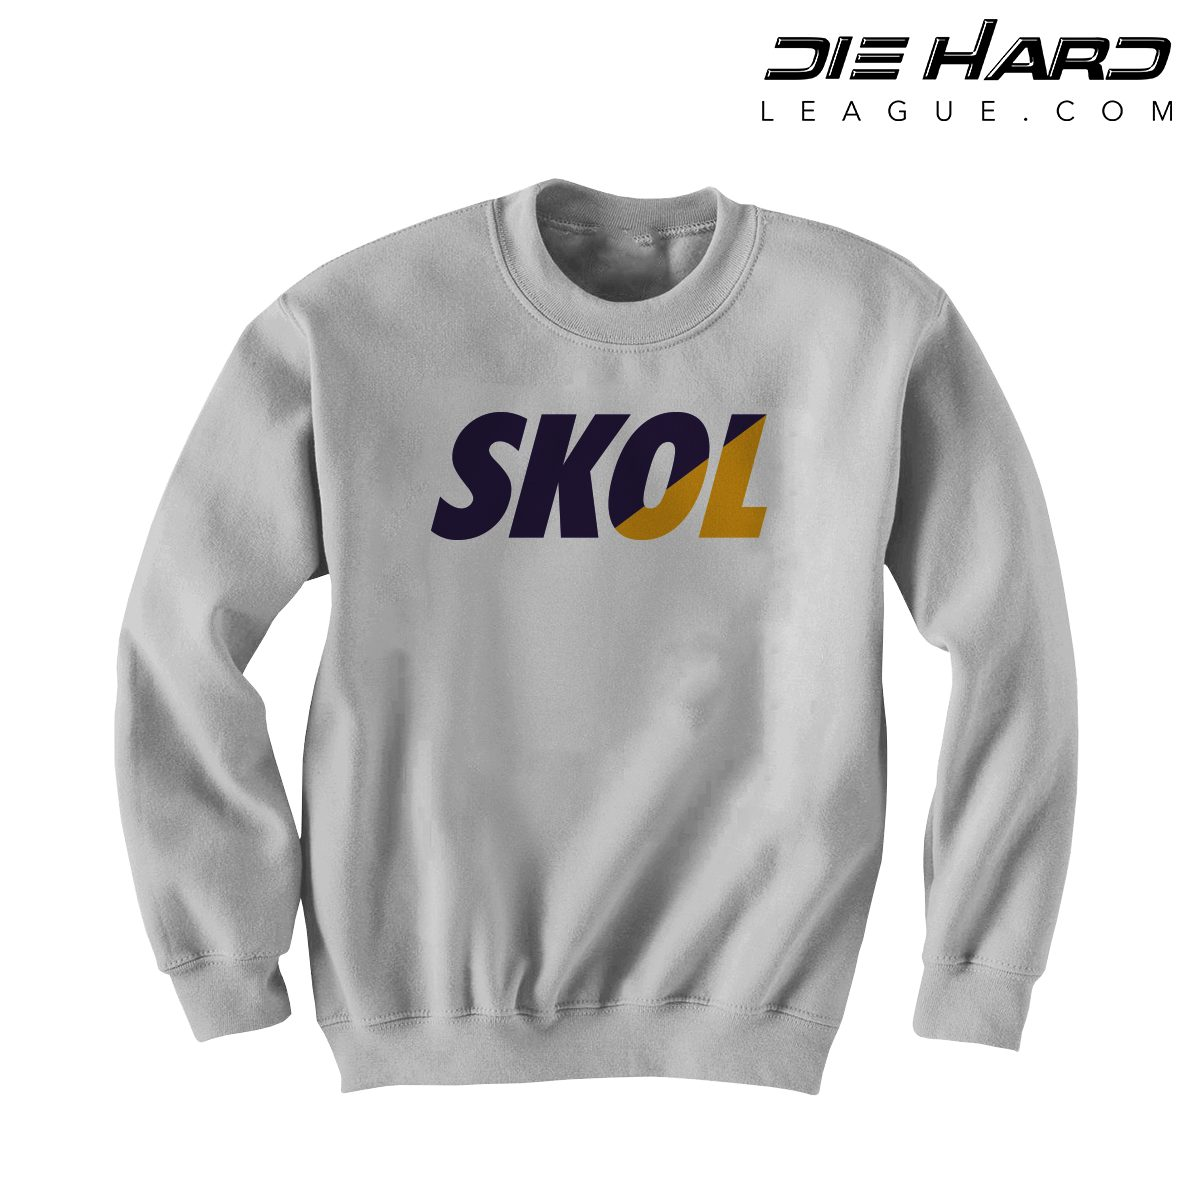 check out 5fcd2 ebf0a Vikings Sweatshirt - Minnesota Vikings SKOL White Crewneck